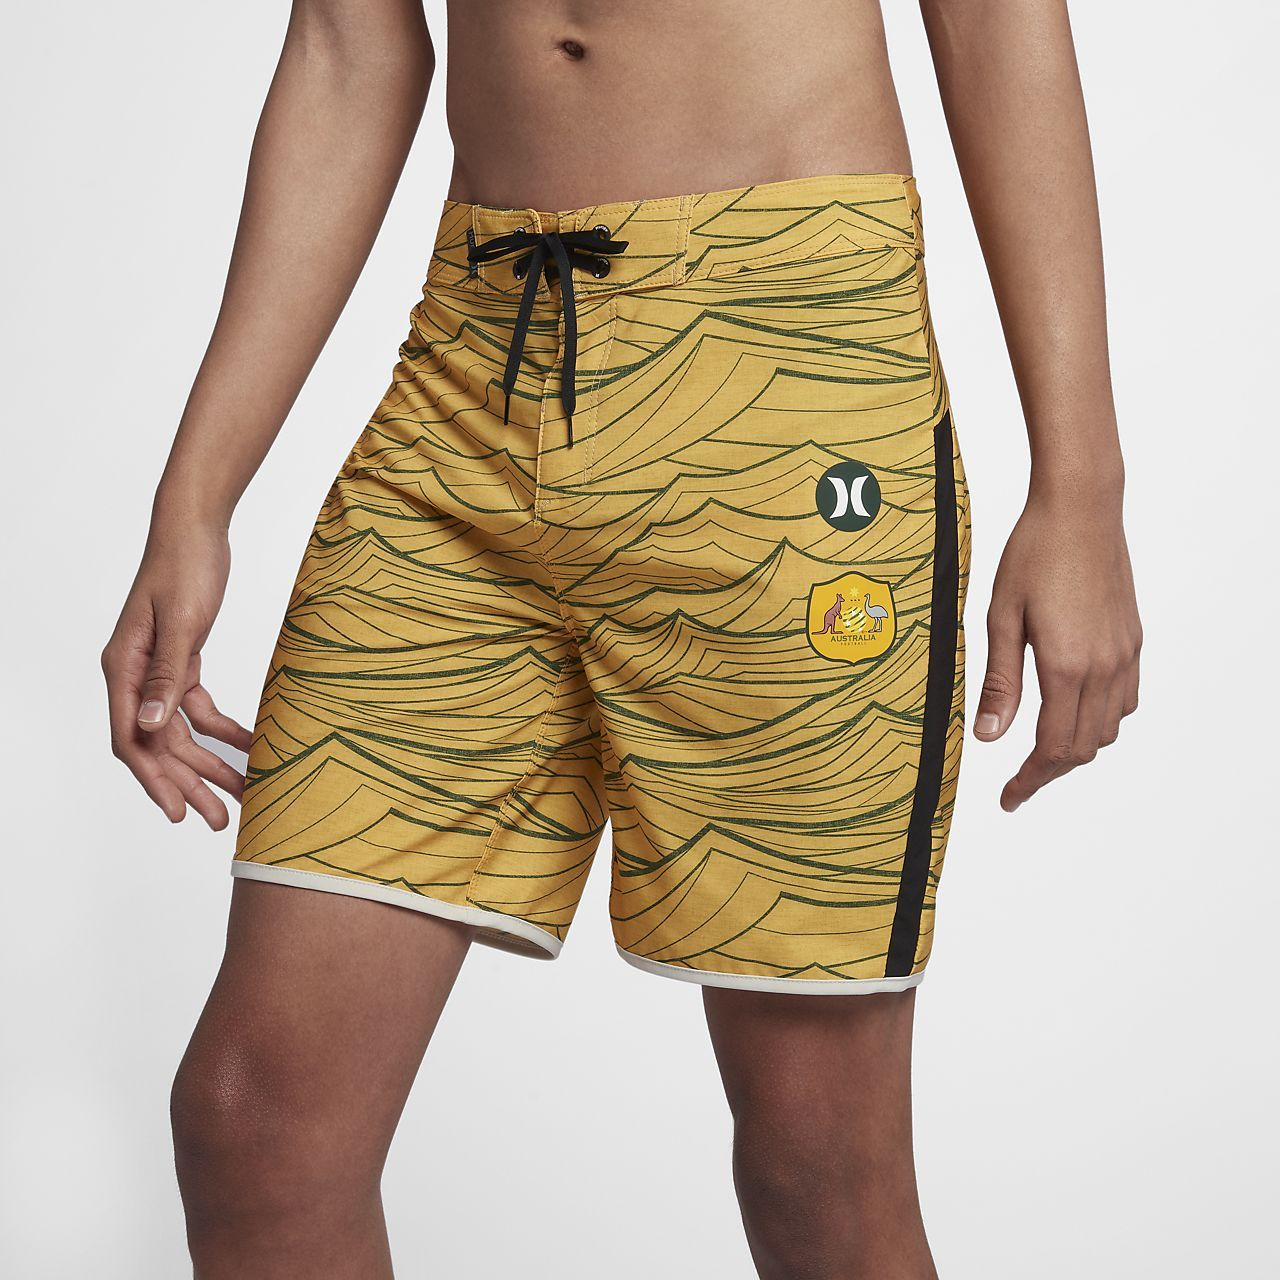 8d8a65634 Bermuda Shorts. Hot Pants. Colleges. Hurley Phantom Australia National Team  Men s 18